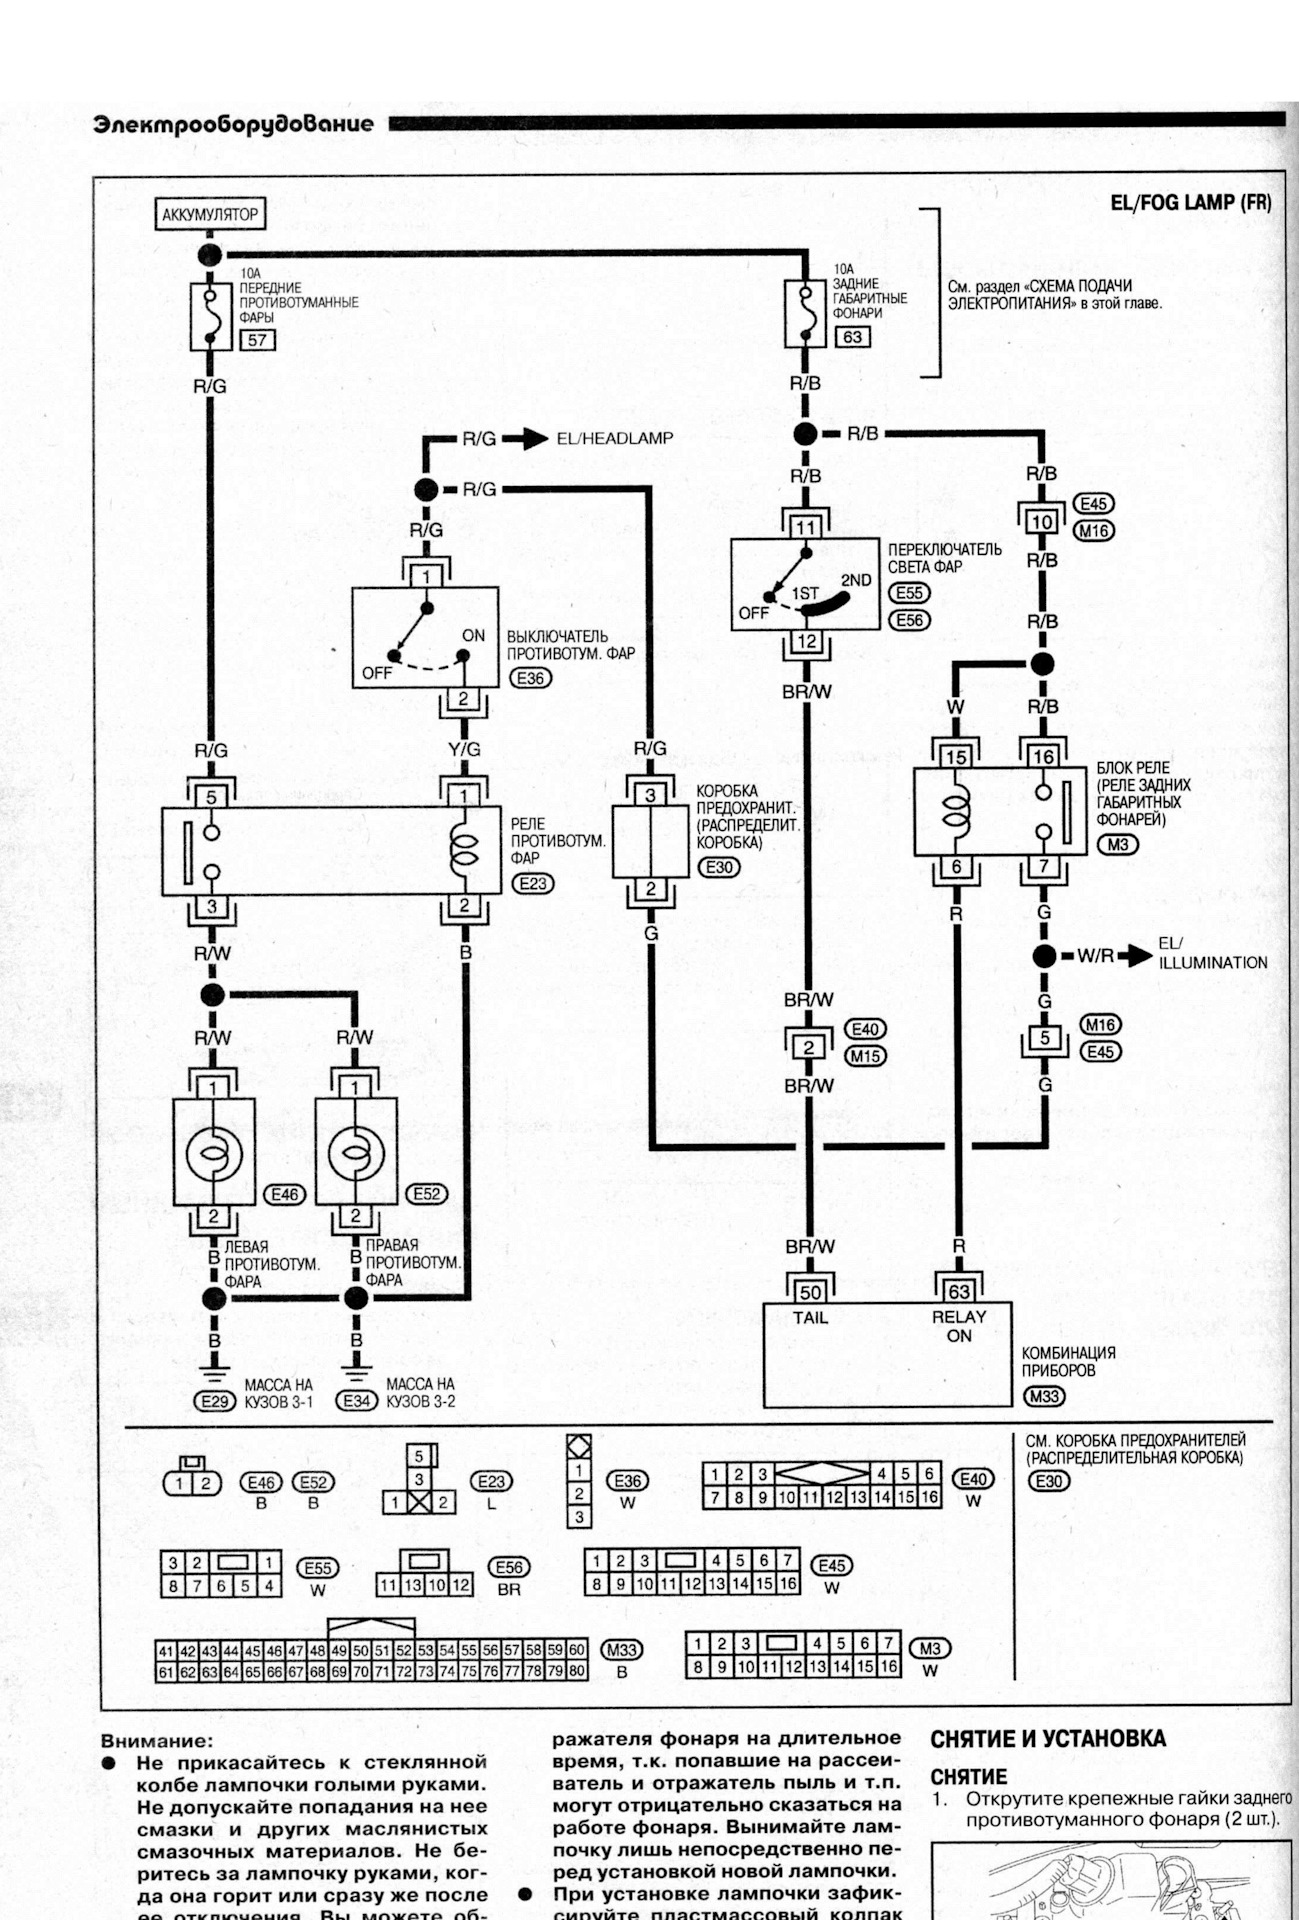 7f18e29s-1920 Radio Wiring Diagram Cavalier on ford explorer, pontiac grand prix, bmw e36, toyota tundra, ford mustang, gm delco, ford expedition, delco car, delco electronics, ford f250,